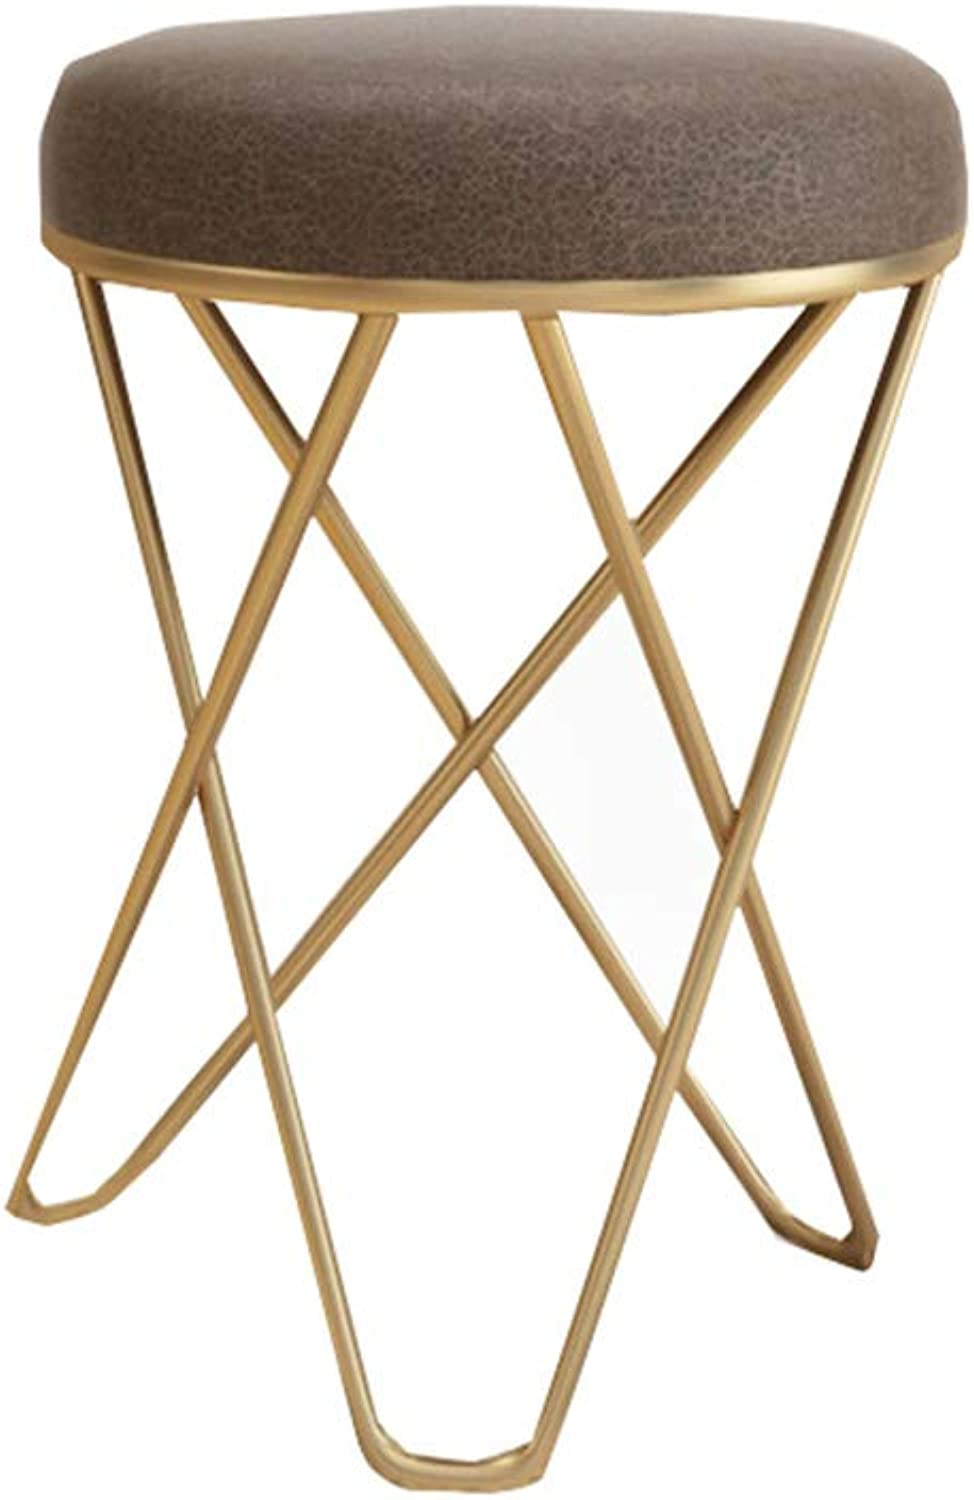 Nordic Wrought Iron Living Room Small Stool Modern Sofa Change shoes Stool Fabric Small Stool Creative Dressing Stool Chair